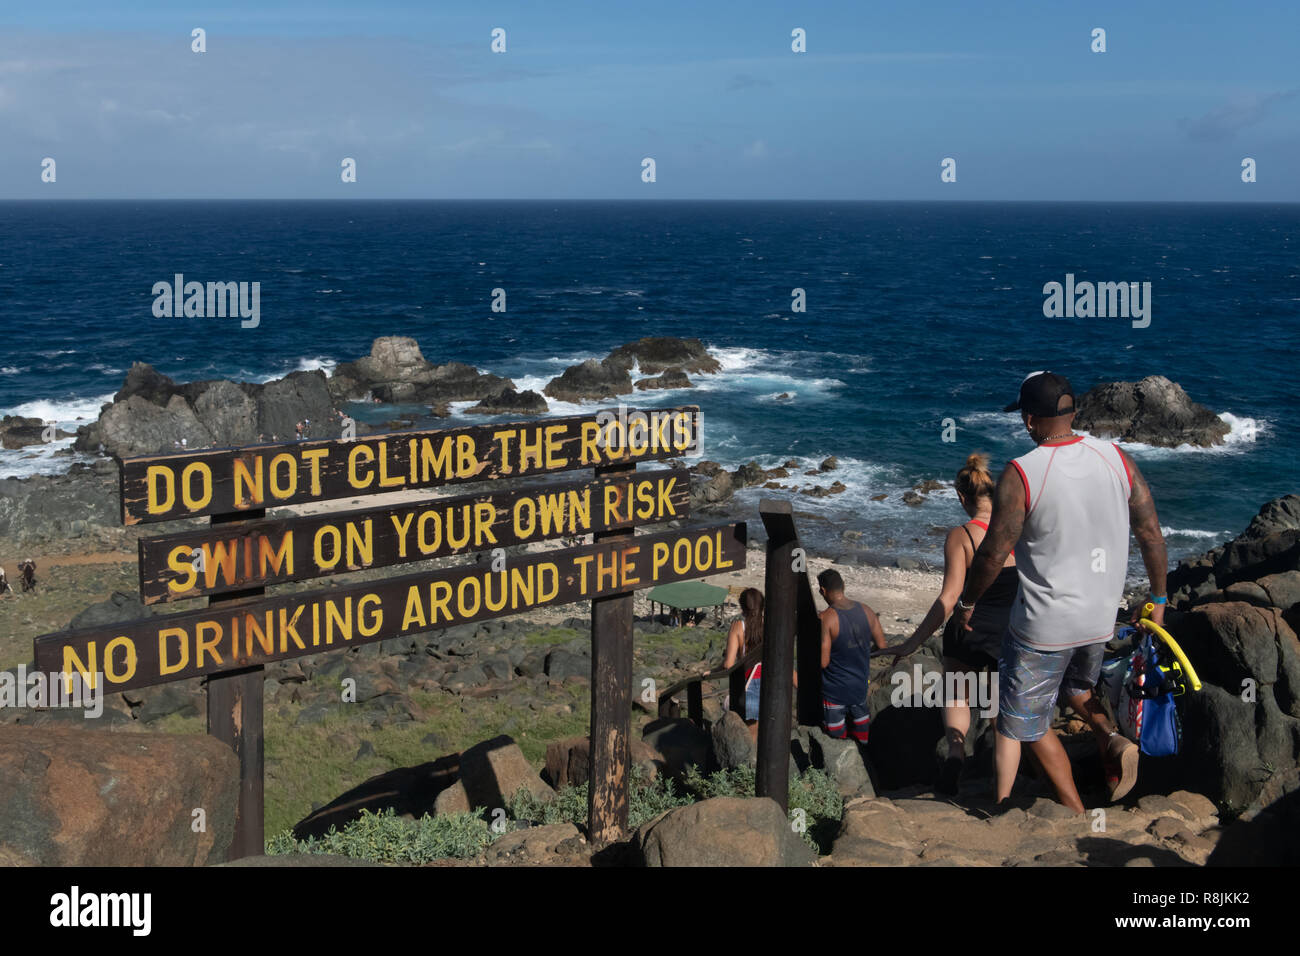 Natural pool Aruba - Conchi Aruba - warning signs for snorkelers and tourists visiting a popular tourist attraction in Arikok National Park - Stock Image